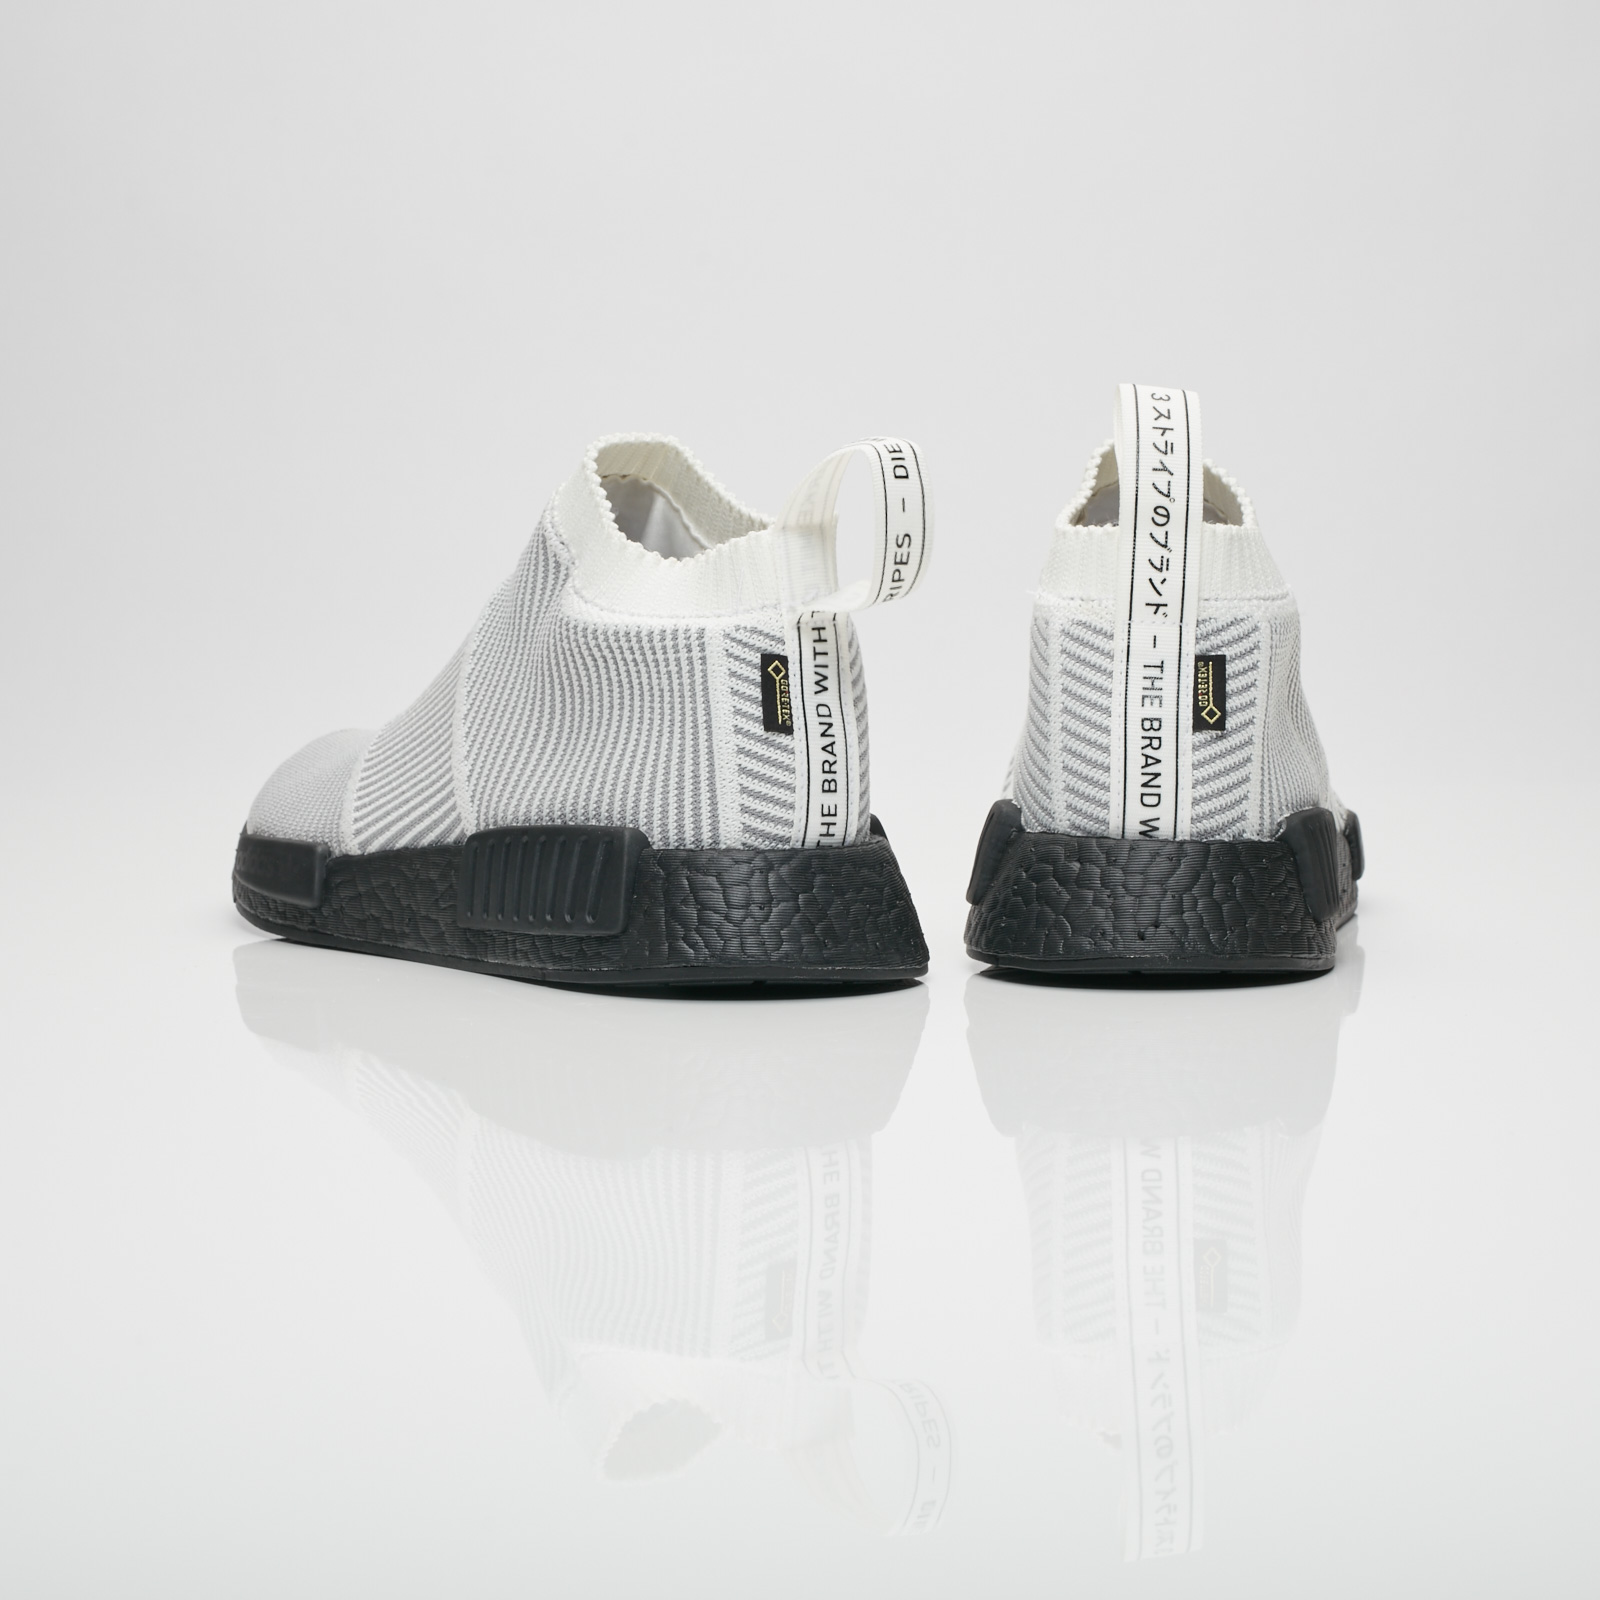 eb27016d9 adidas NMD GORE-TEX Primeknit - By9404 - Sneakersnstuff